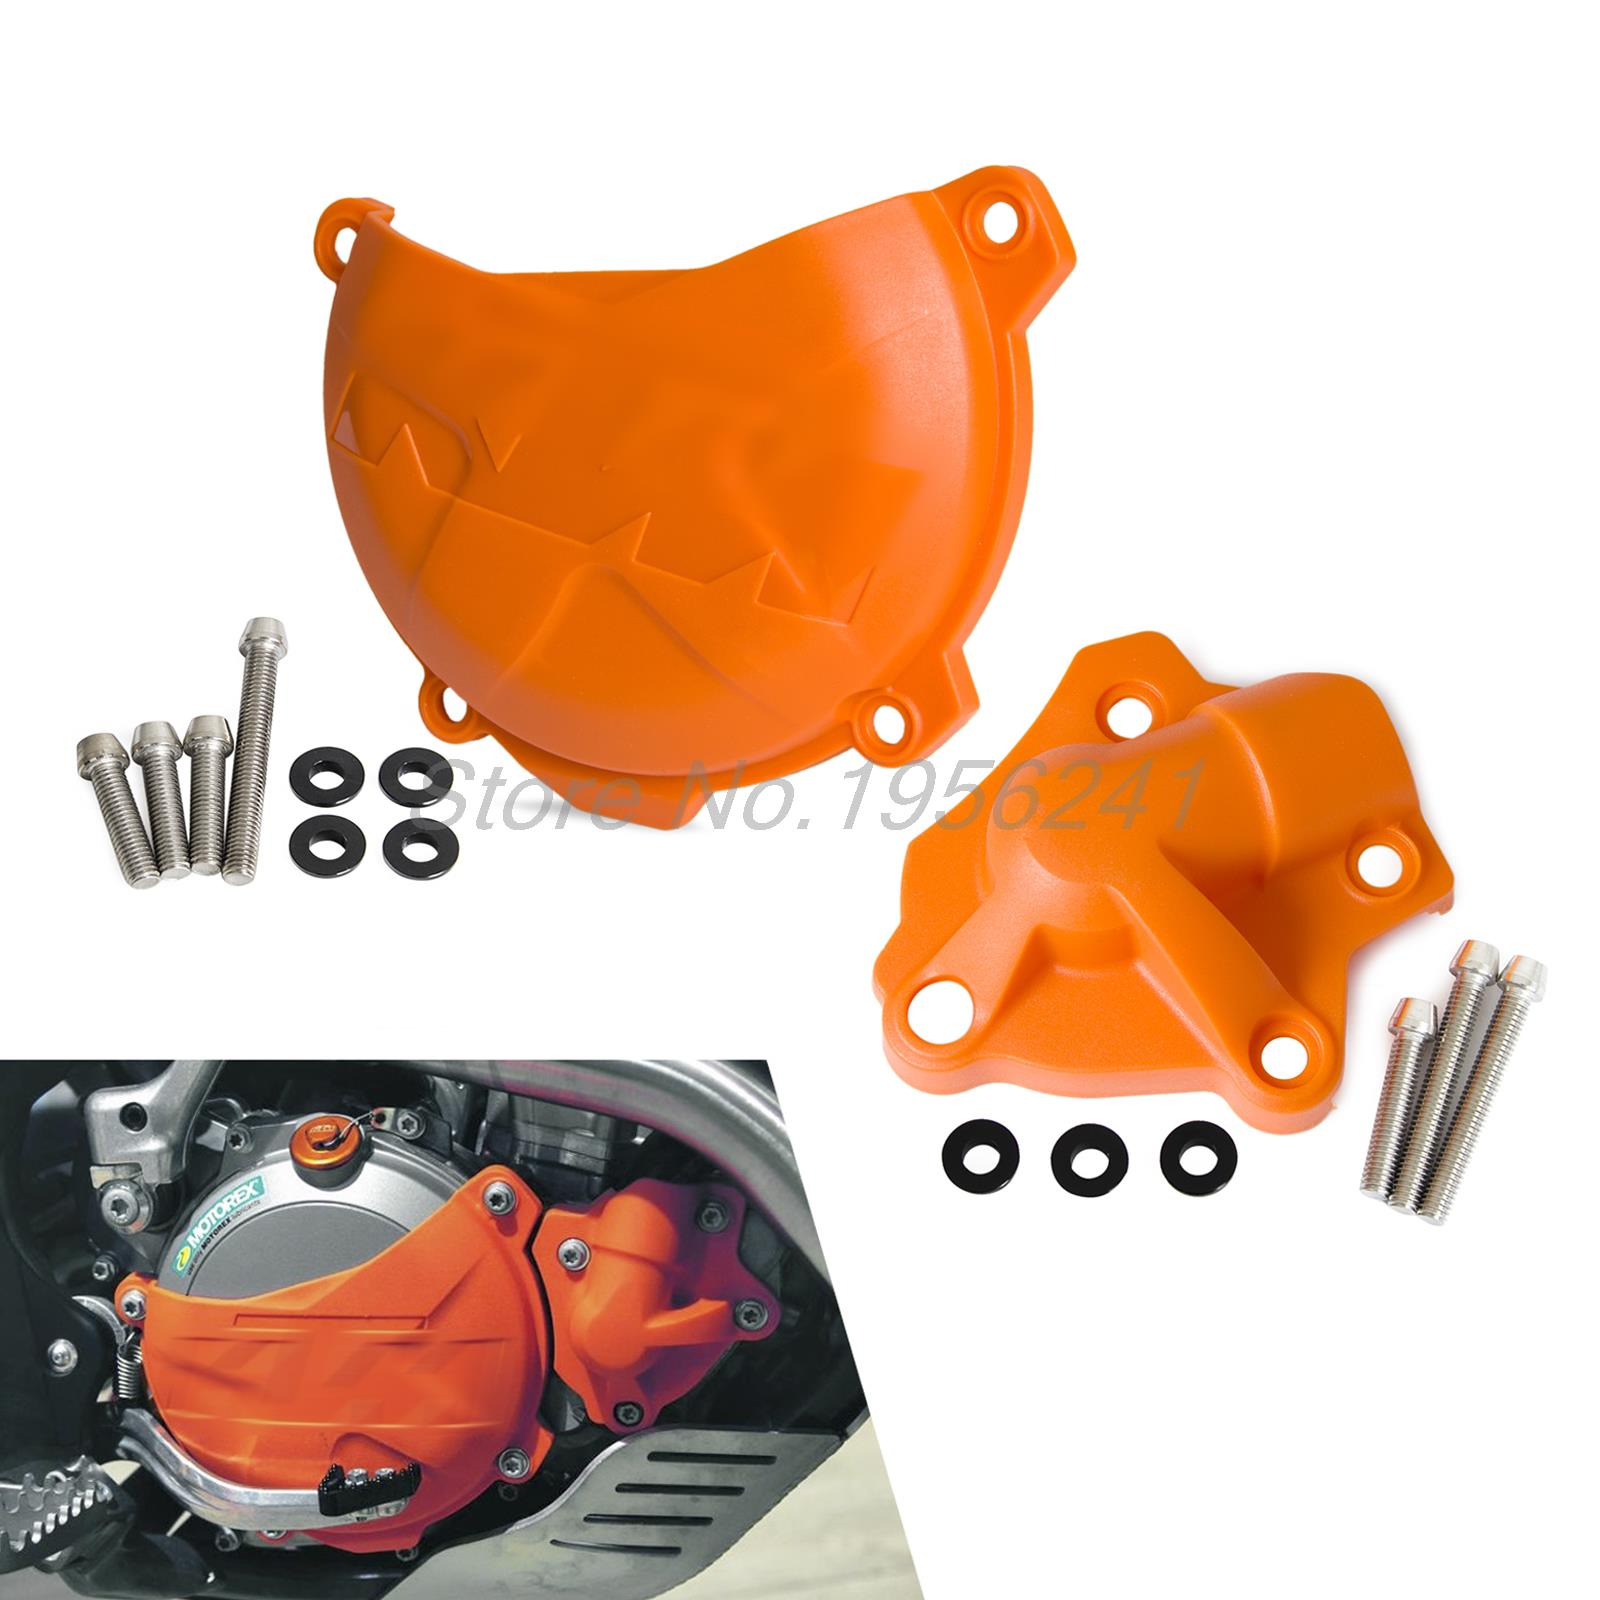 Clutch Cover/Water Pump Cover Protector for KTM 250 EXC-F SIX DAYS 2014-2015 2016<br>